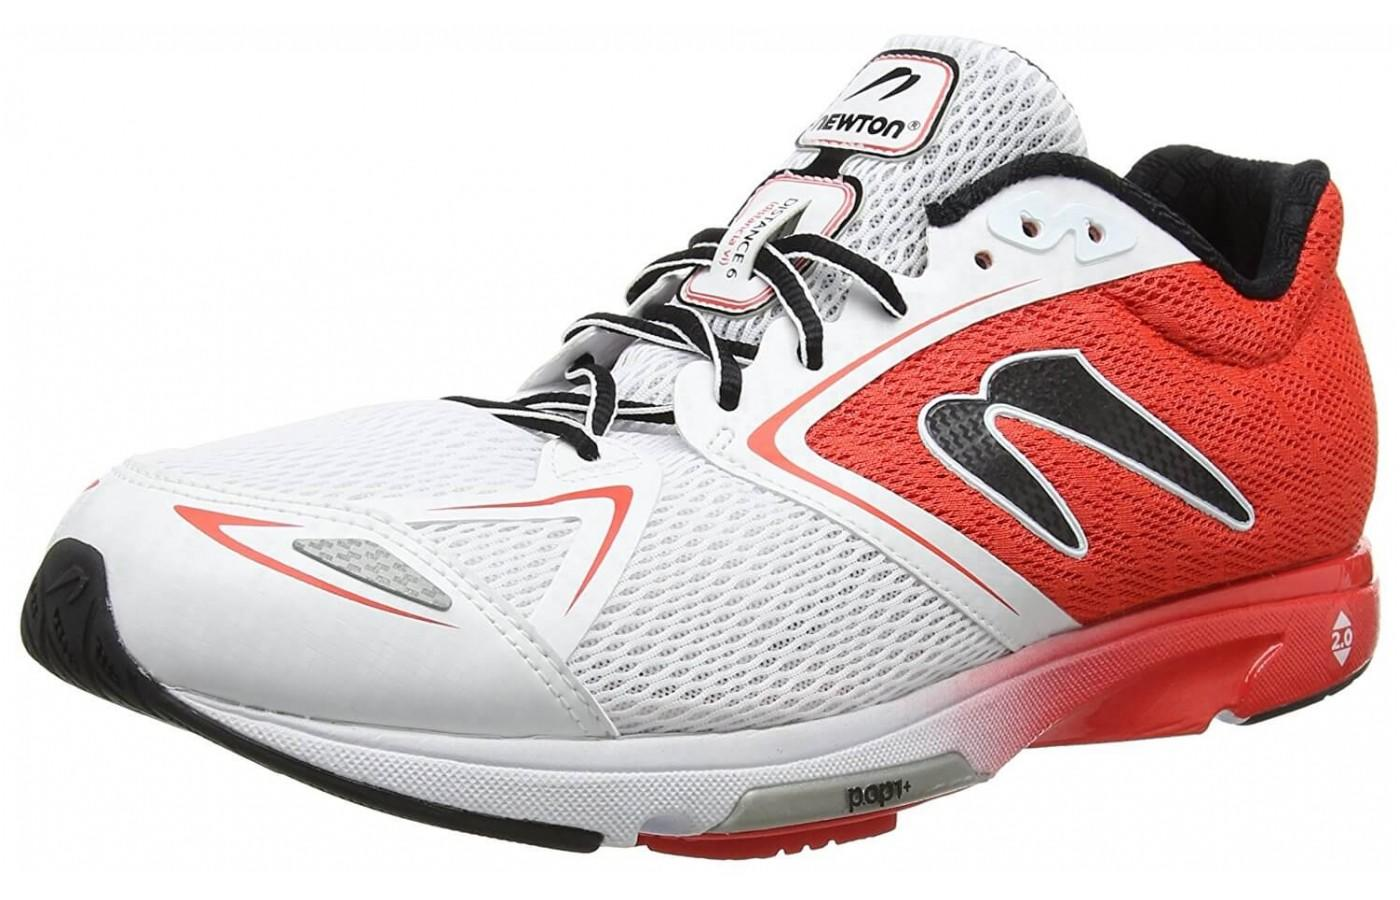 The Newton Distance 6 shown from the front/side